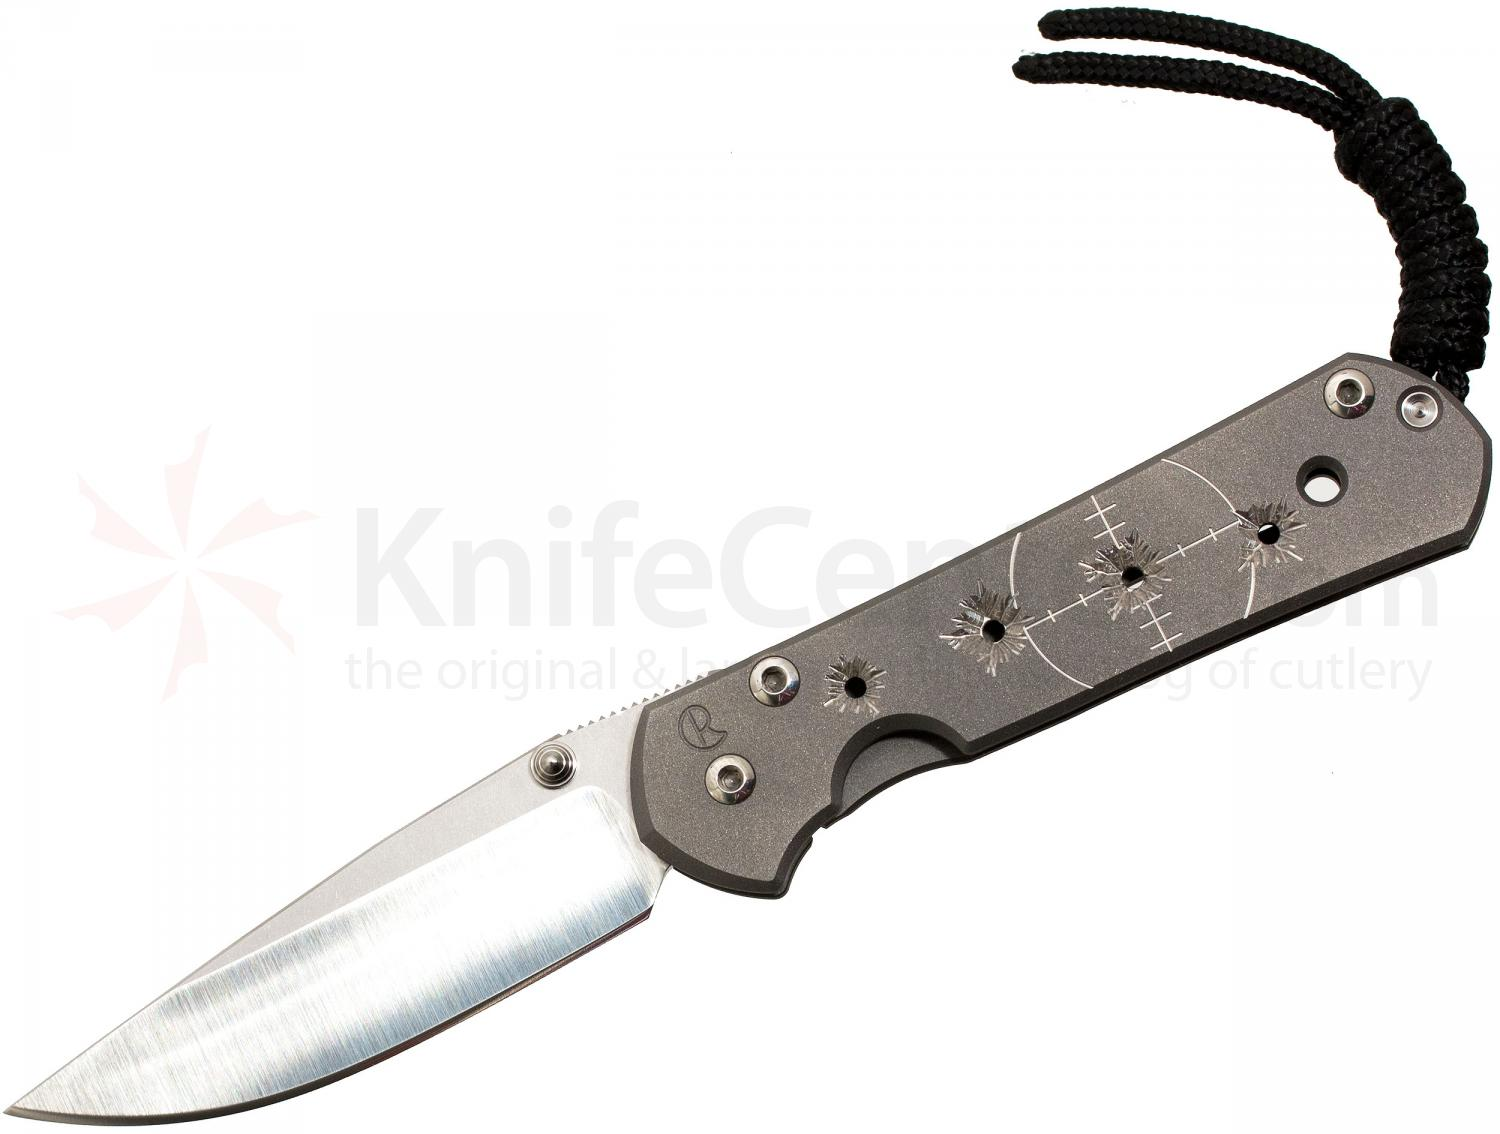 Chris Reeve Small Sebenza 21 Riddled CGG 2.94 inch S35VN Blade, Titanium Handles DISCONTINUED VERSION, LIMITED AVAILABILITY